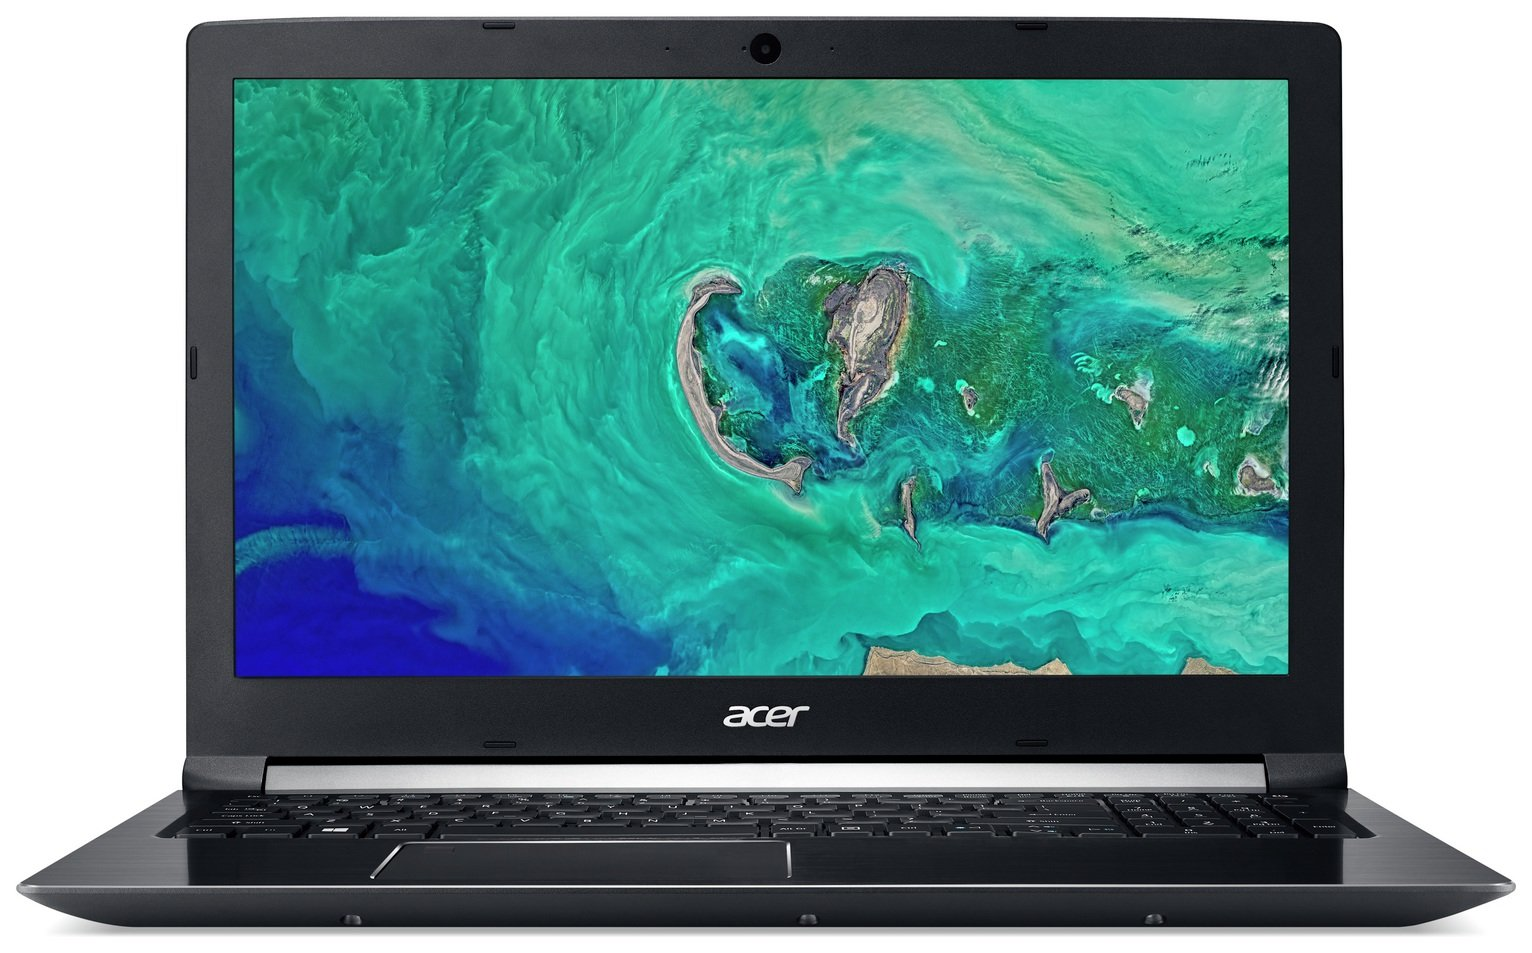 Acer Aspire 7 15.6 Inch i5 8GB 1TB GTX1050 Laptop